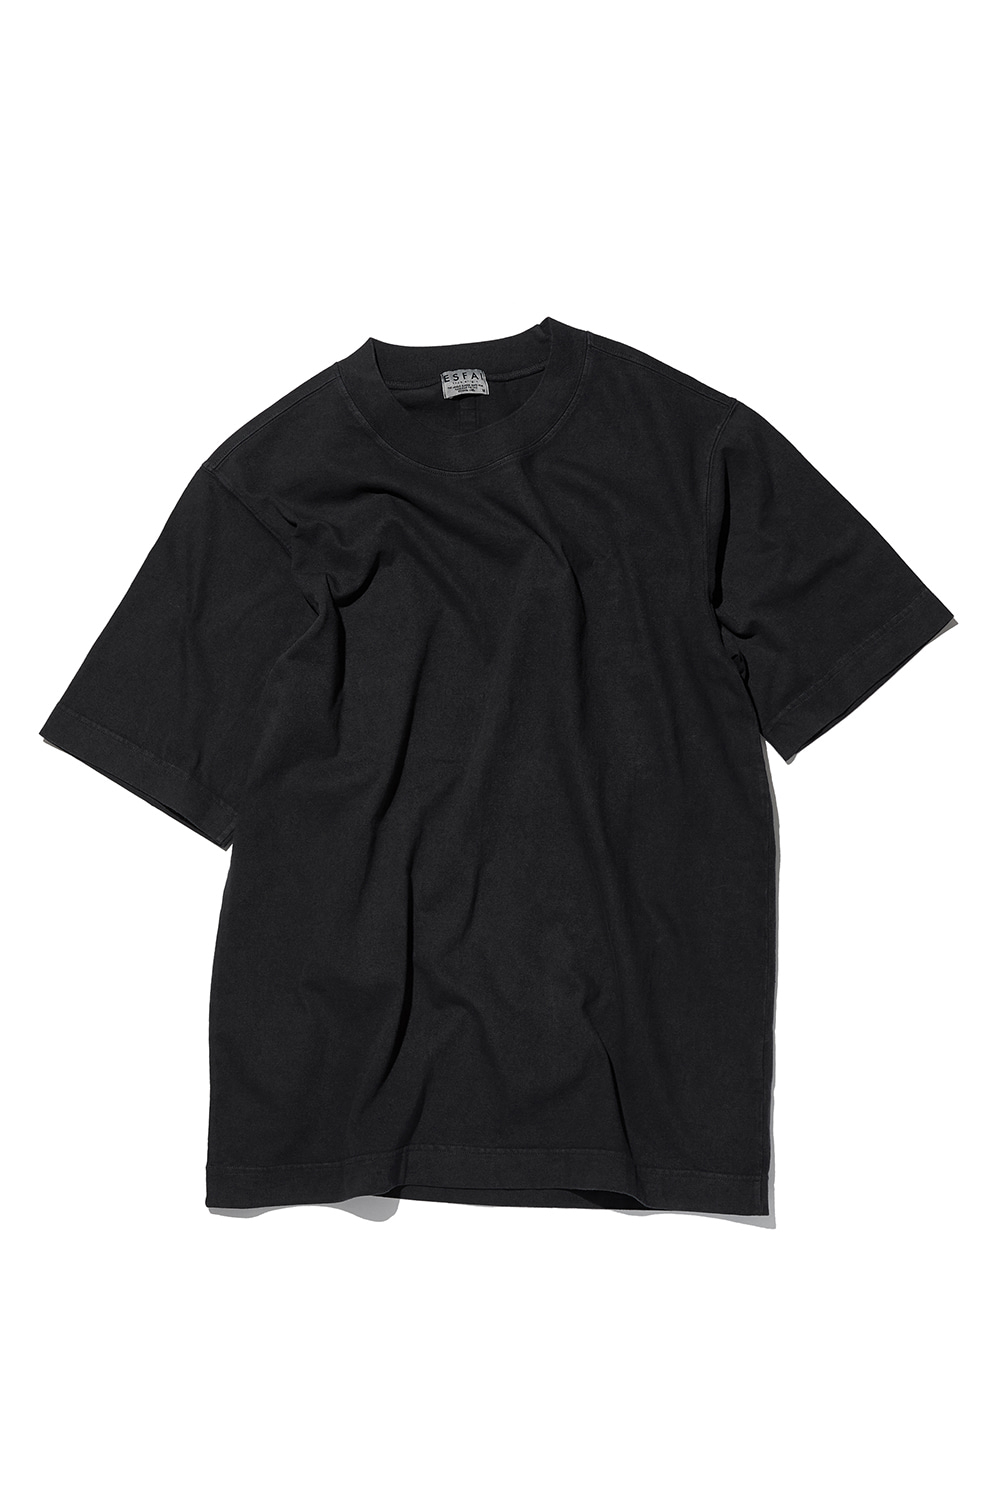 [ESFAI] 1,3/8 T Shirt (Black/Only ESFAI Store)